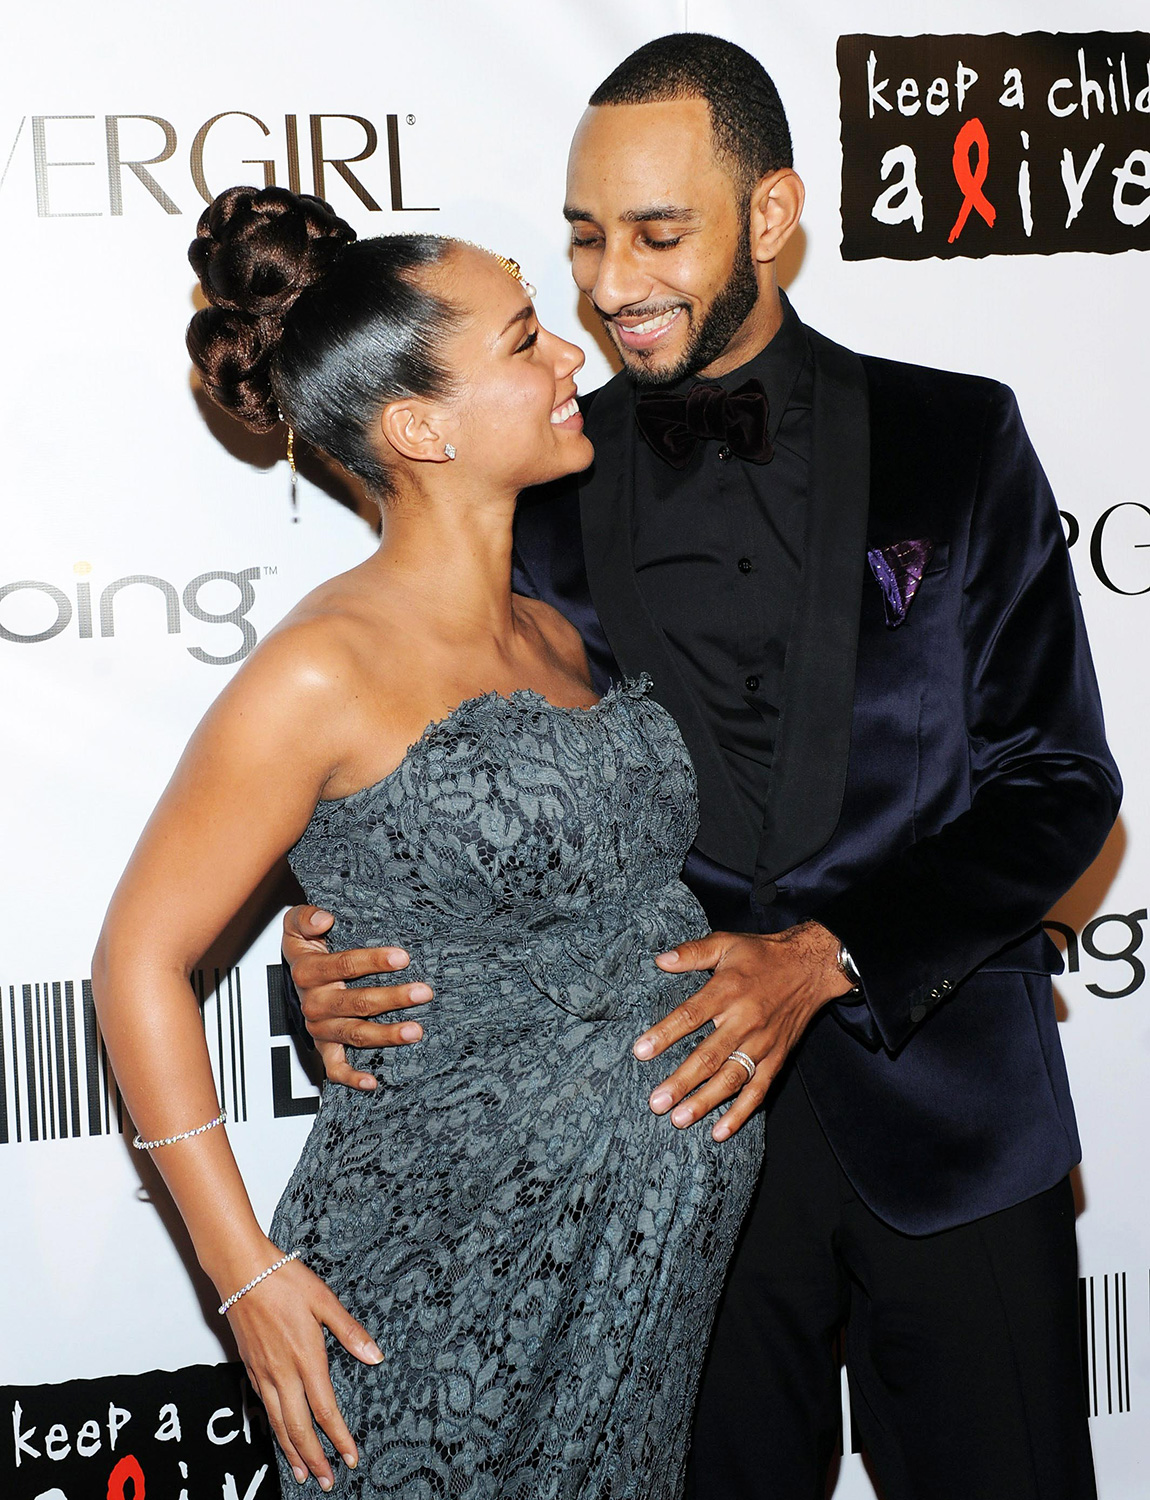 Alicia Keys and husband producer Swizz Beatz